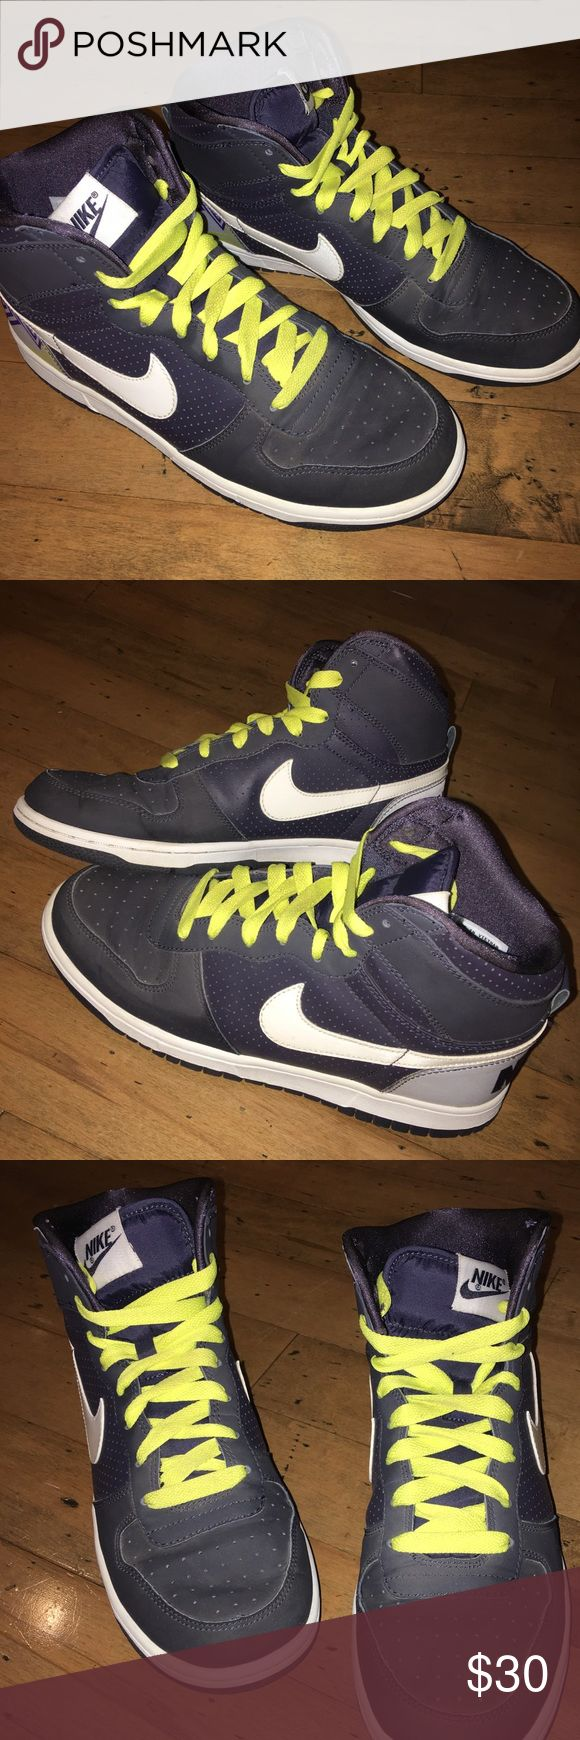 new arrivals c5eea 649a8 Big Nike Woven High Le. Nike DunksWhite LaceYellow .